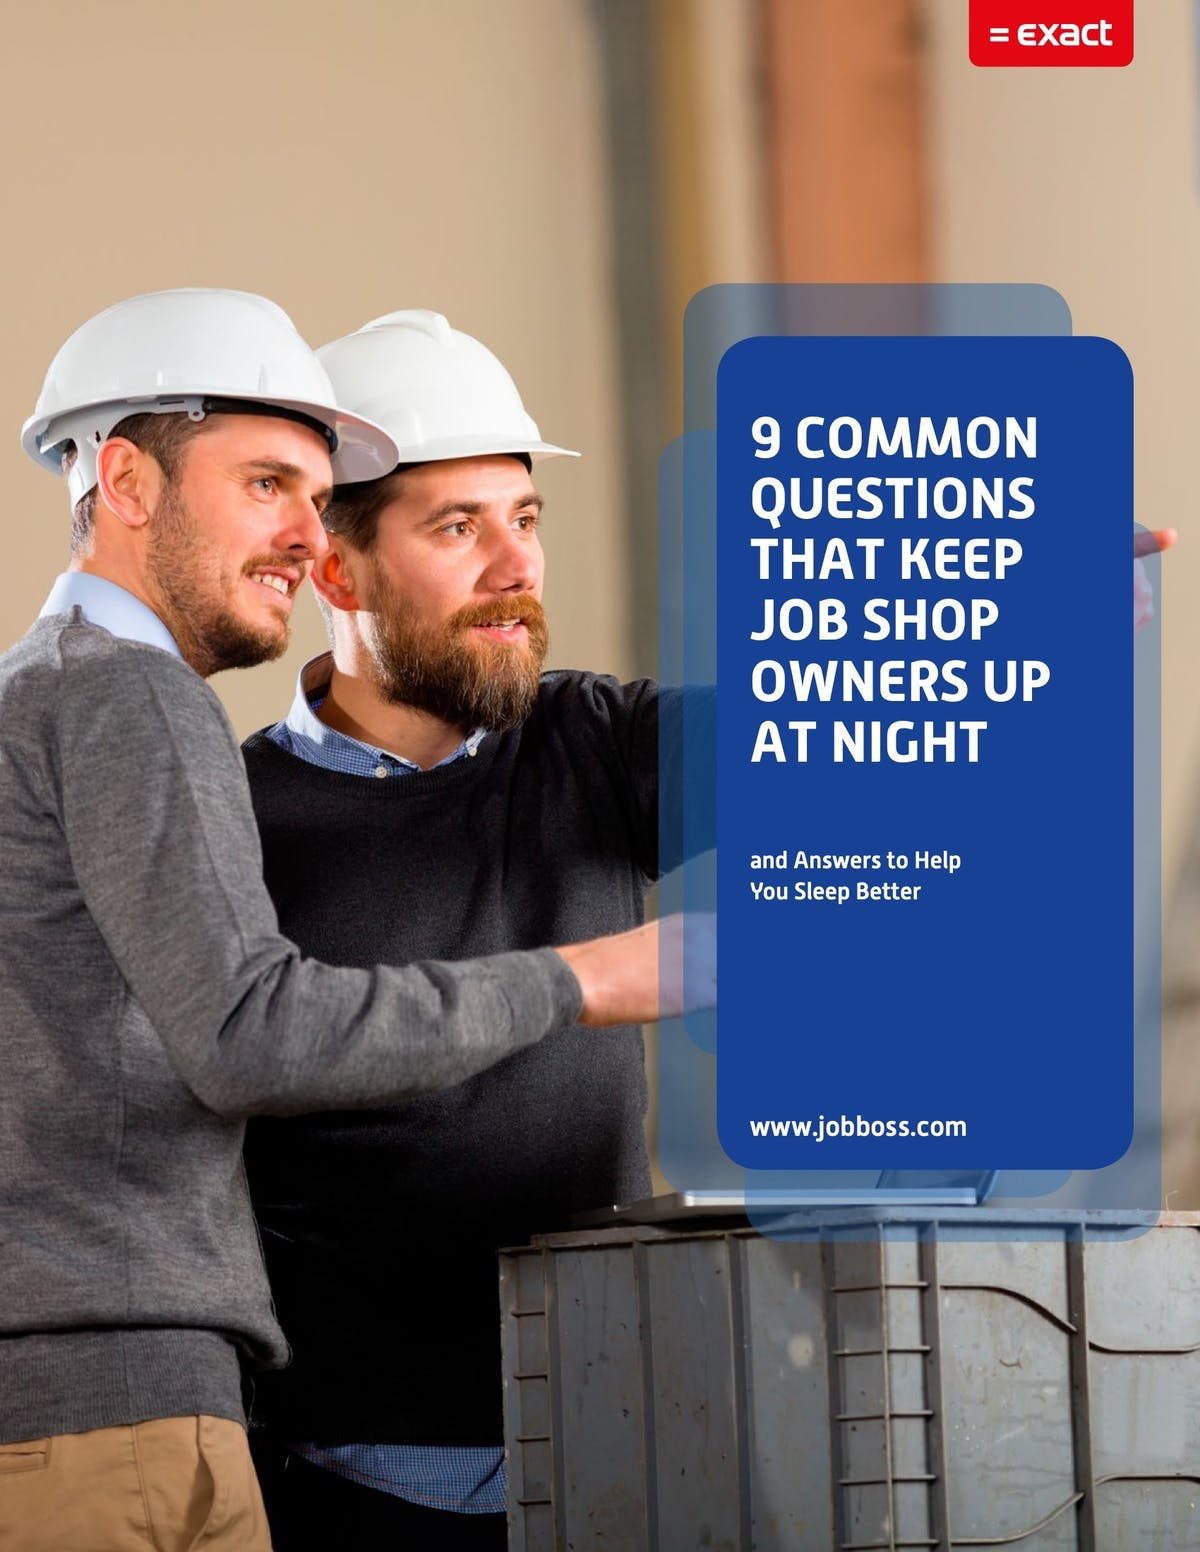 JobBOSS  Shop Management Solution White Paper - 9 Common Questions that Keep Job Shop Owners Up at Night